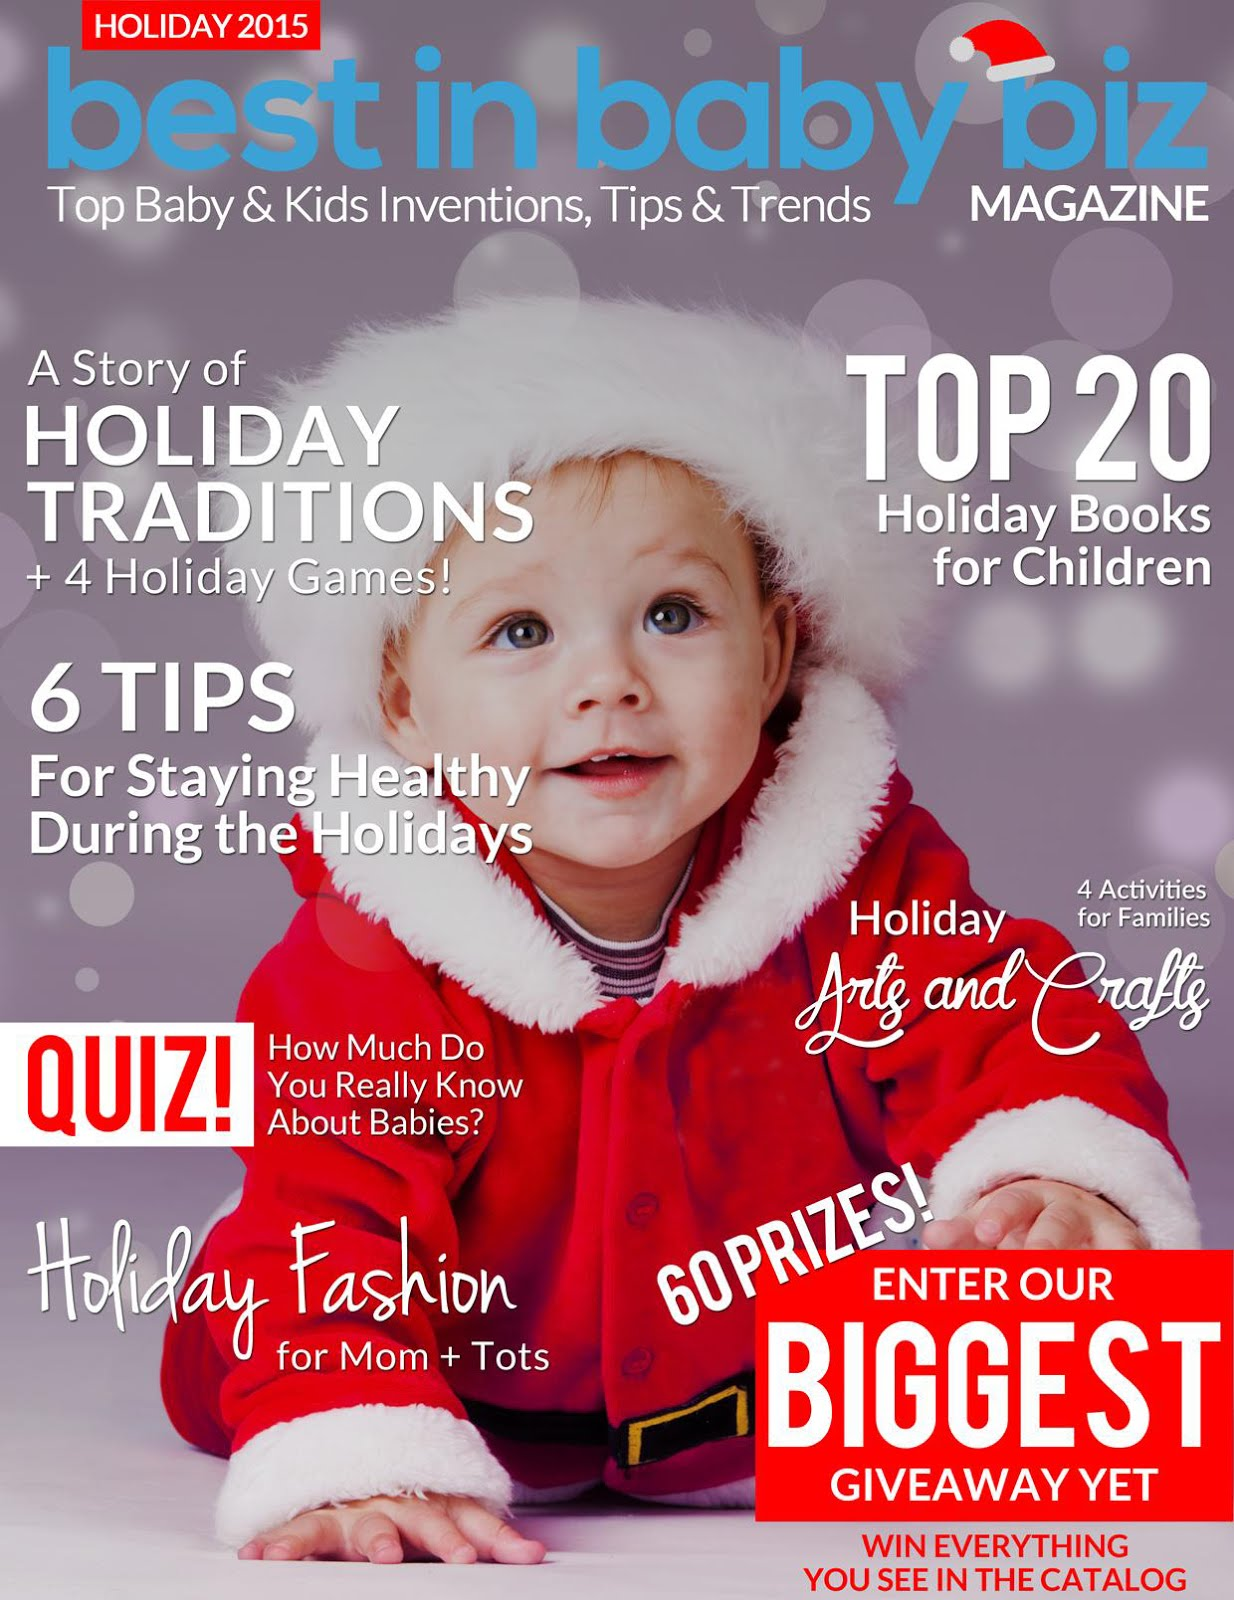 Genesis 950 was featured in the Holiday 2015 Issue of Best In Baby Biz